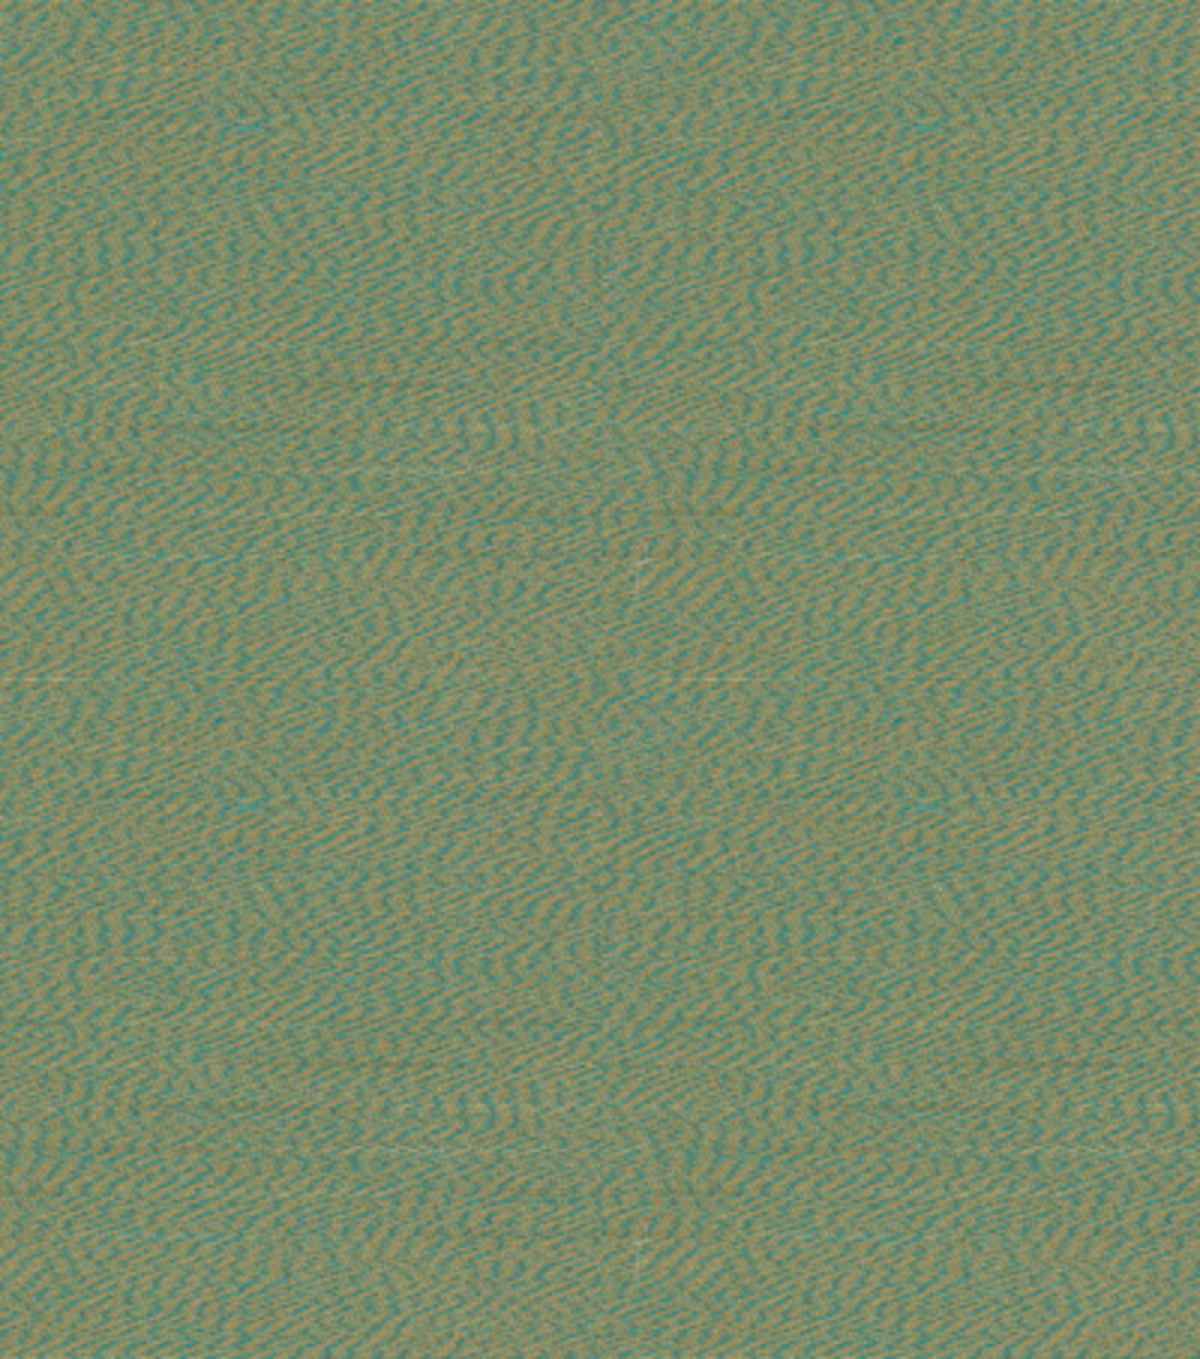 HGTV Home Multi-Purpose Decor Fabric 54\u0022-Polarized/Teal